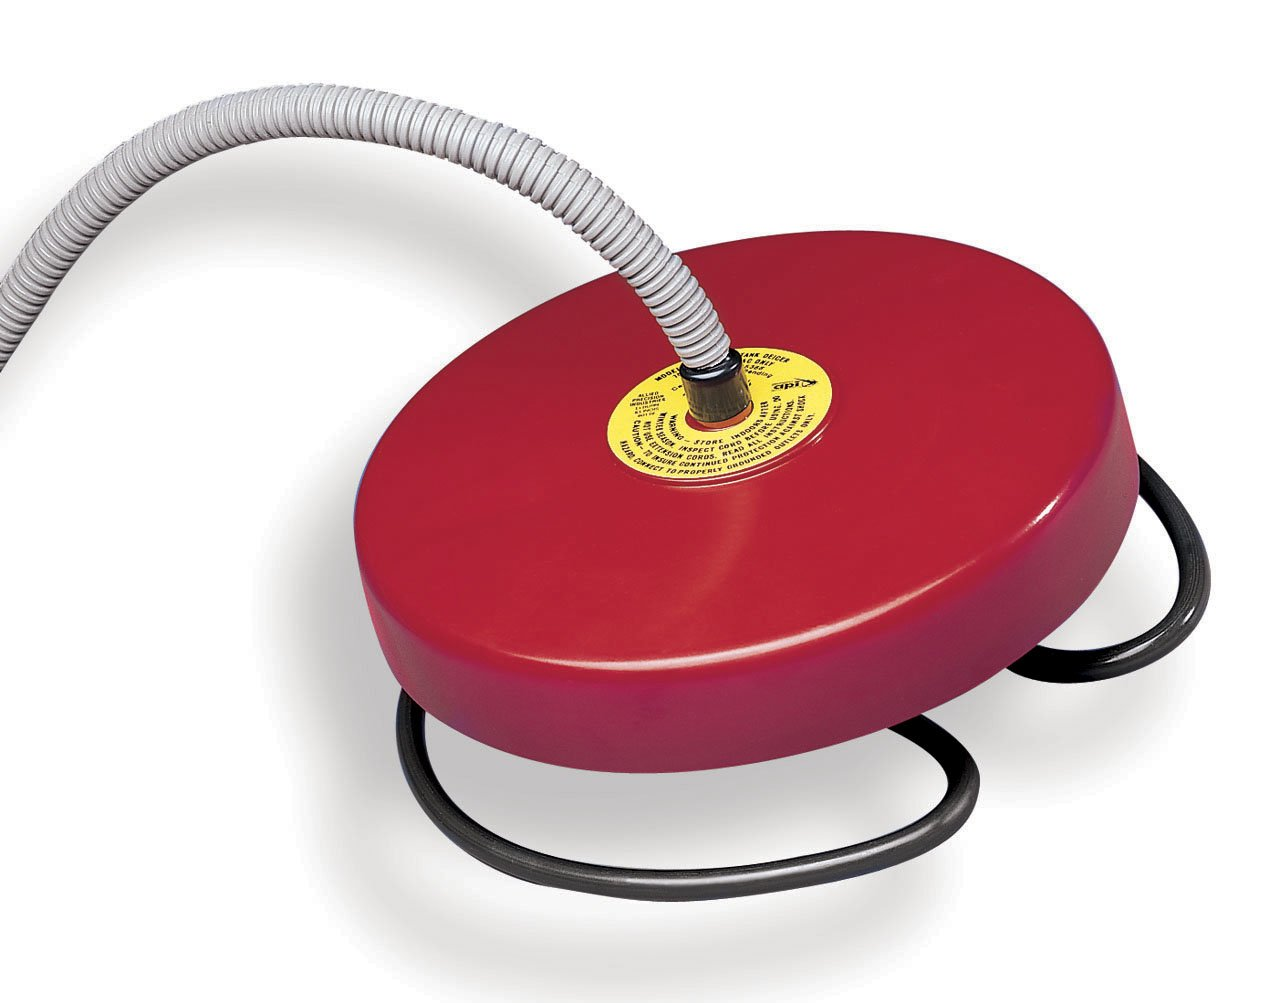 Allied Precision P7621 Floating Pond De-Icer With 15-Foot Cord, 1,000 Watt